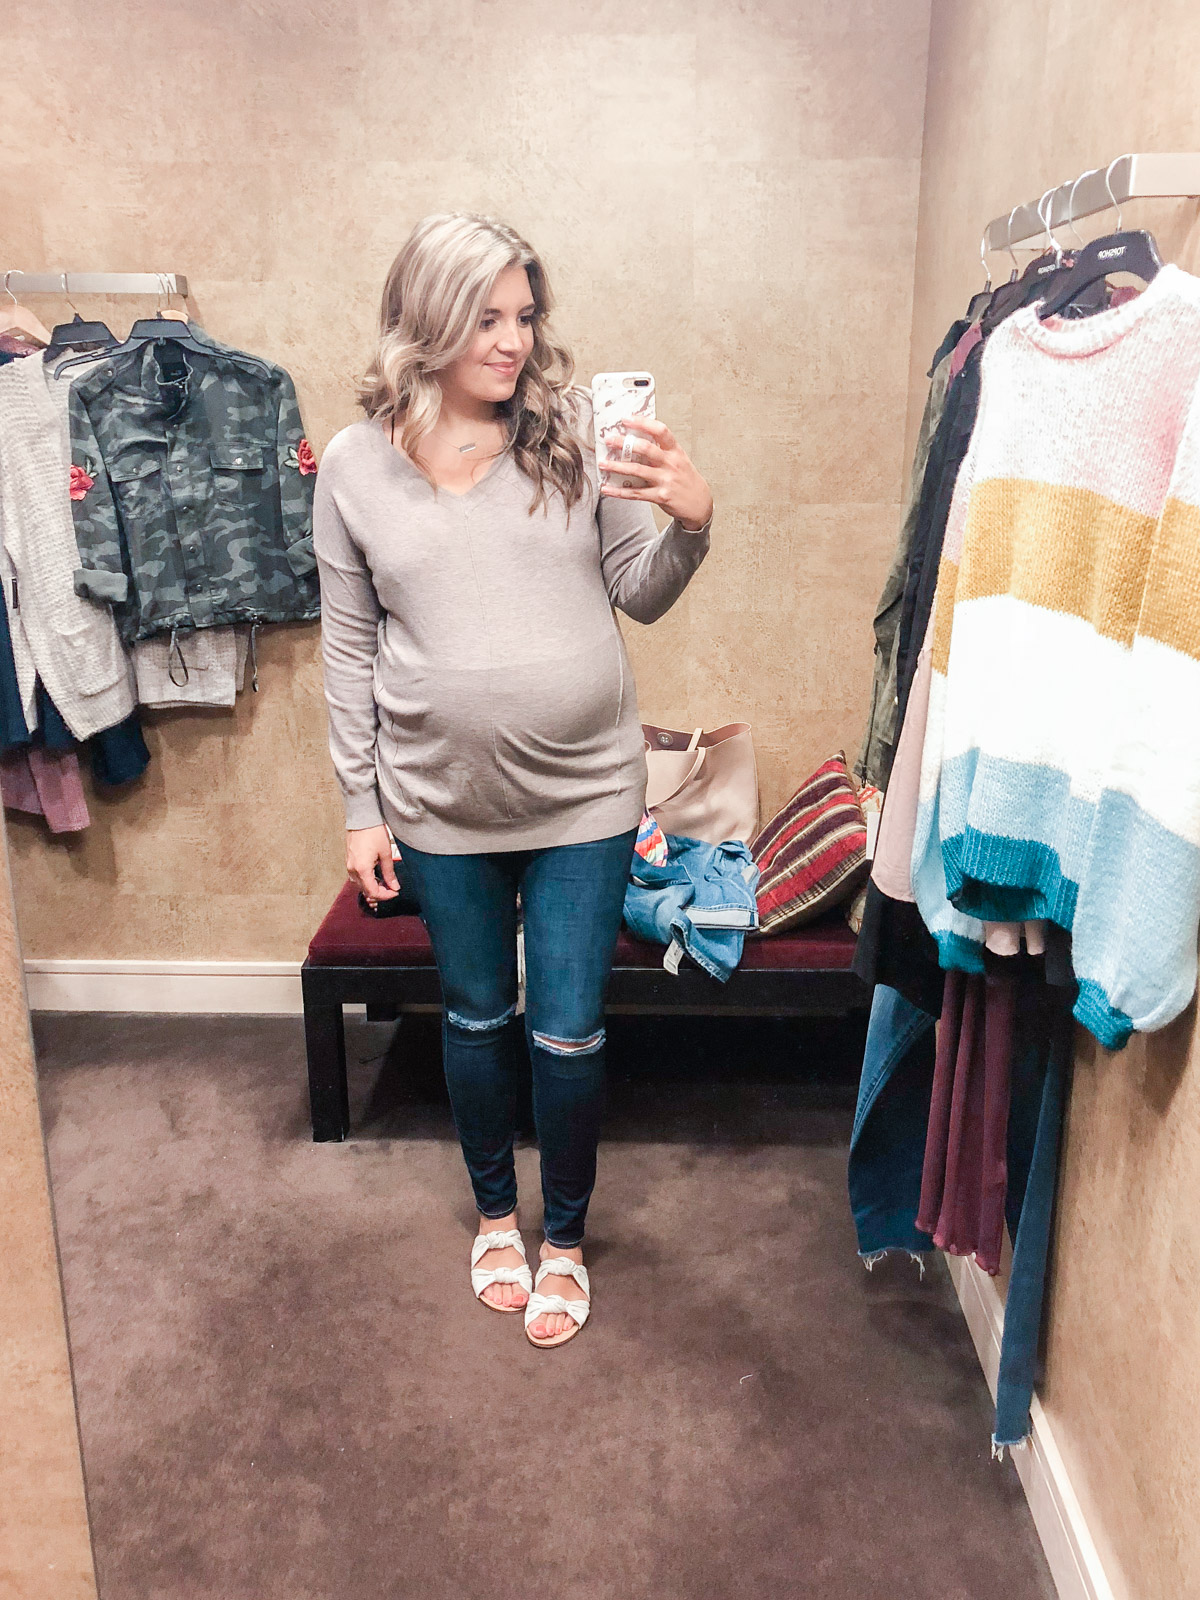 dreamers sweater - Nordstrom anniversary sale 2018 try-on session: over 25 items reviewed for fit and size! | bylaurenm.com